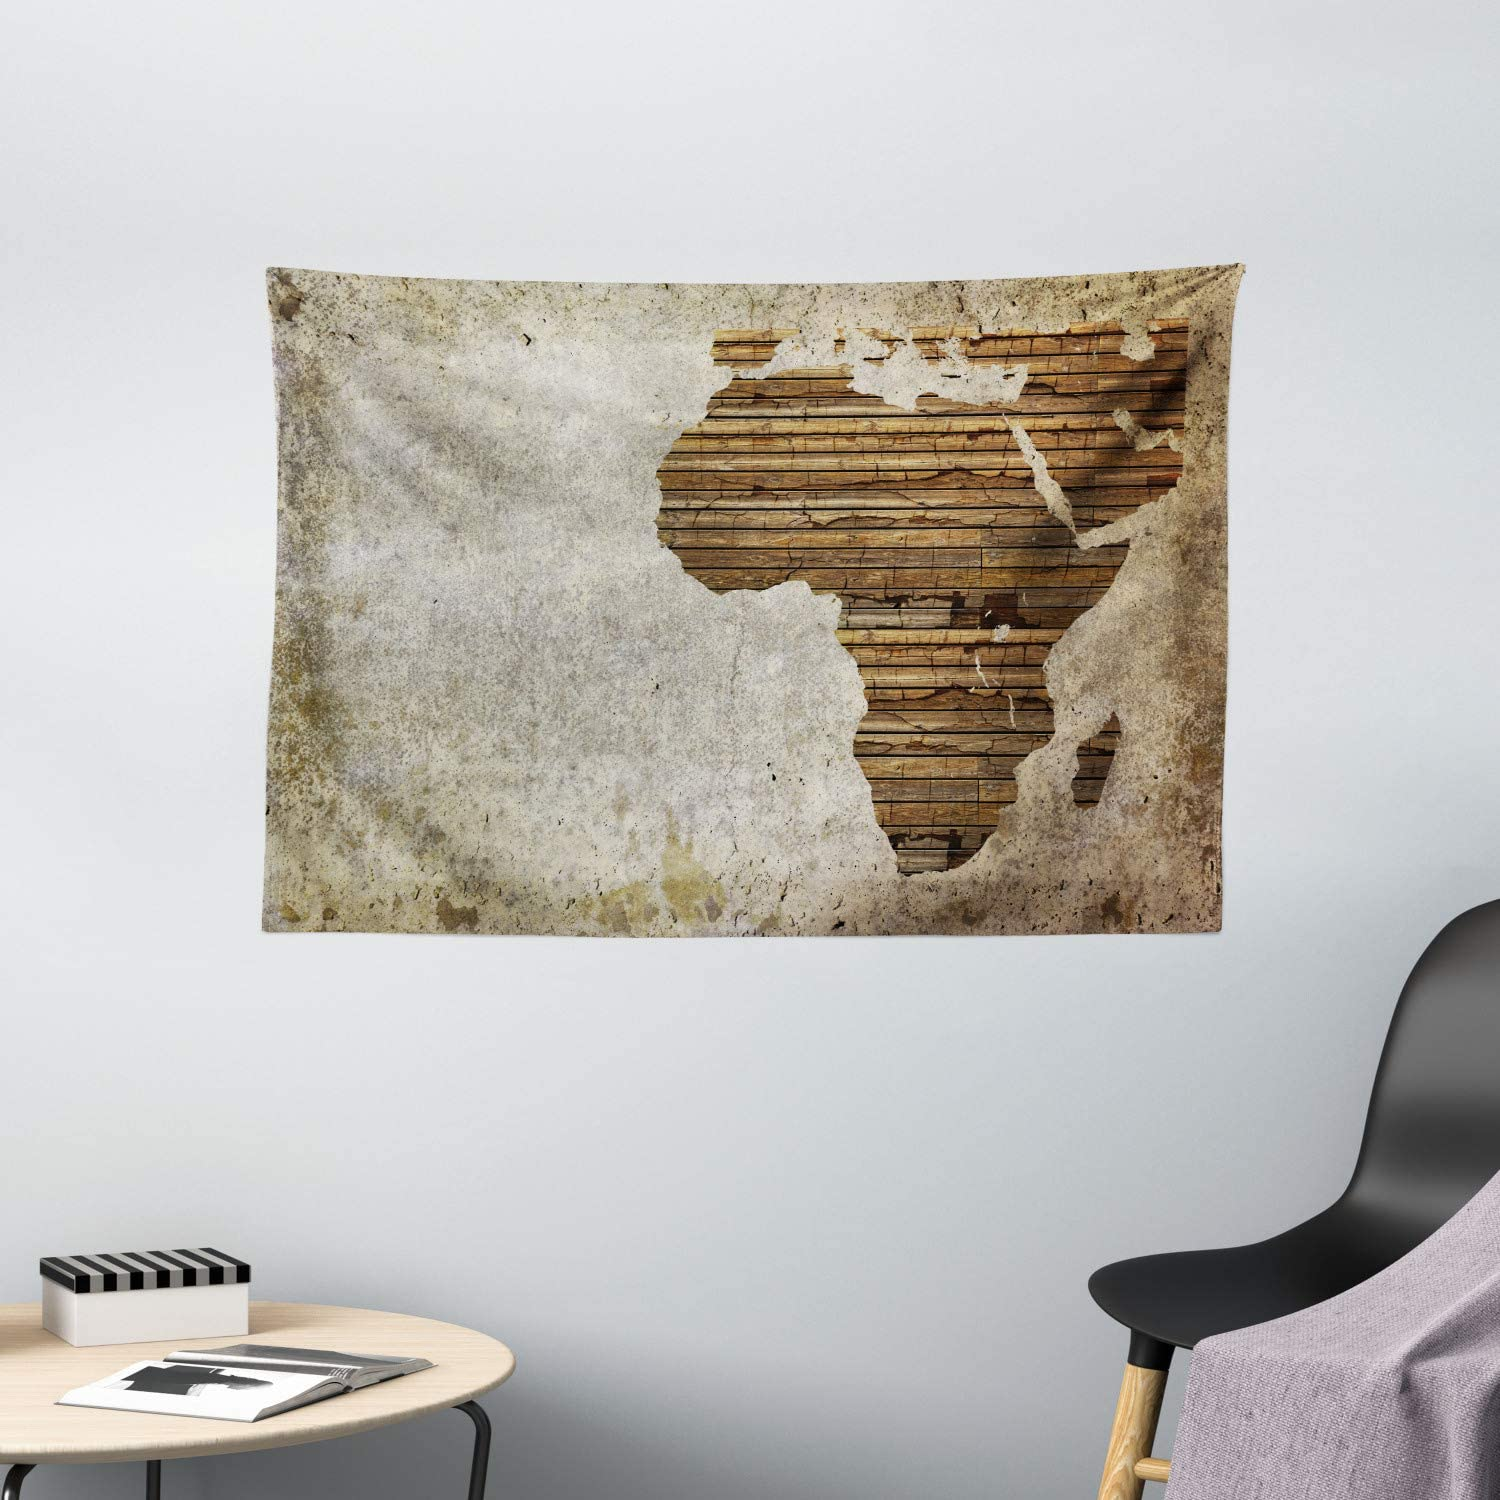 "Ambesonne African Tapestry, Geography Theme Grunge Vintage Wooden Plank and Map Digital Print, Wide Wall Hanging for Bedroom Living Room Dorm, 60"" X 40"", Tan Umber"